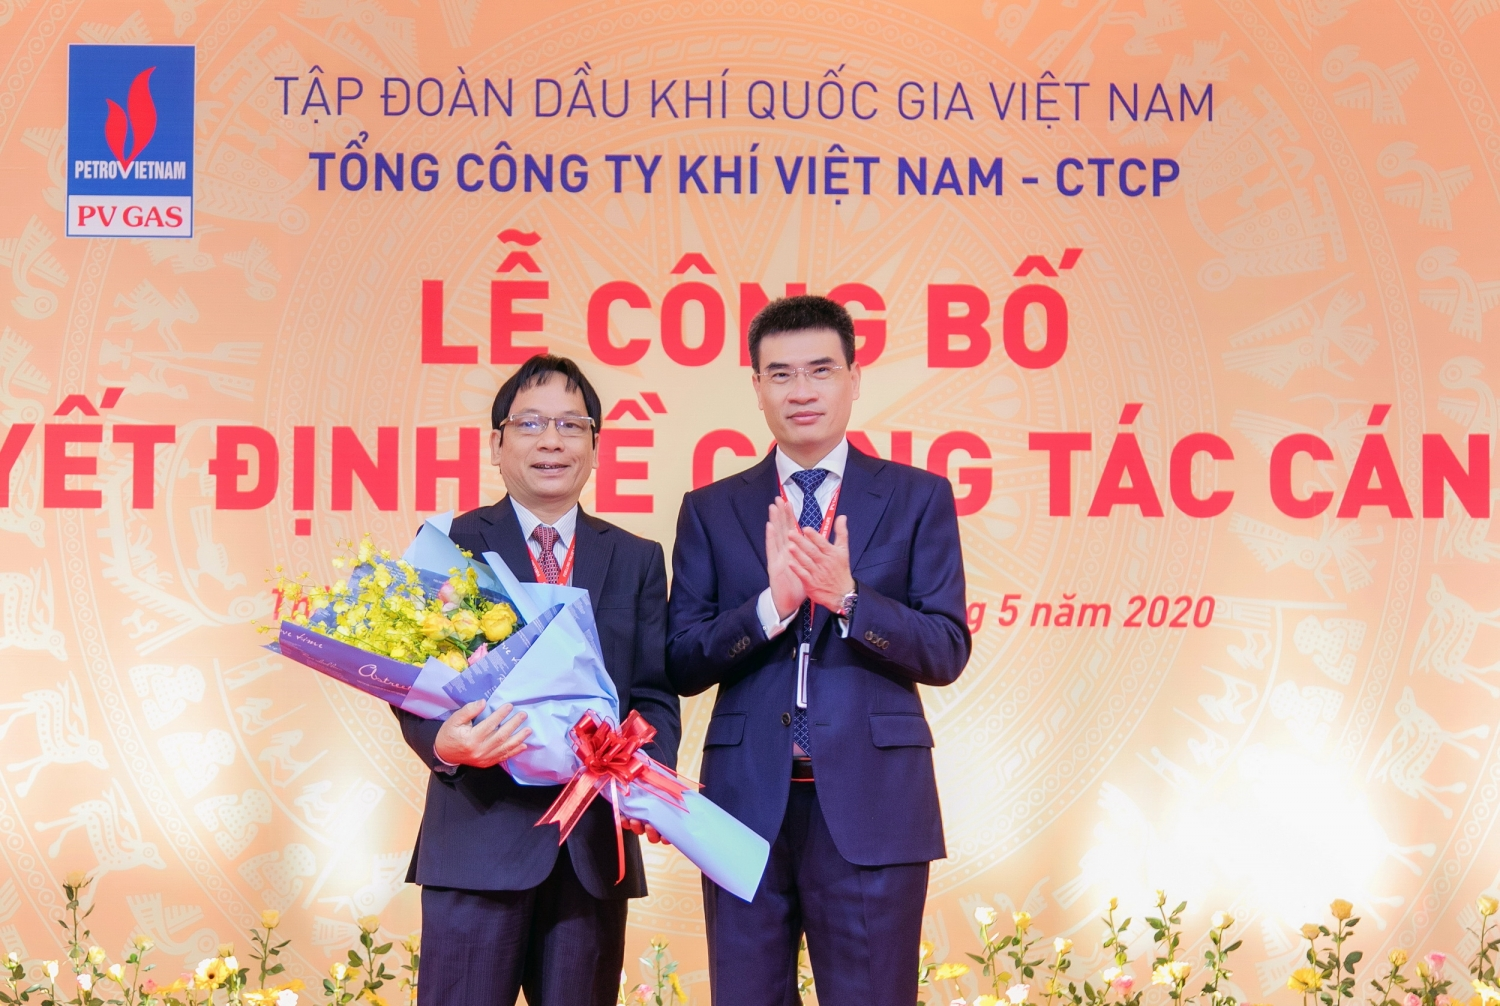 pv gas to chuc le cong bo quyet dinh ve cong tac can bo